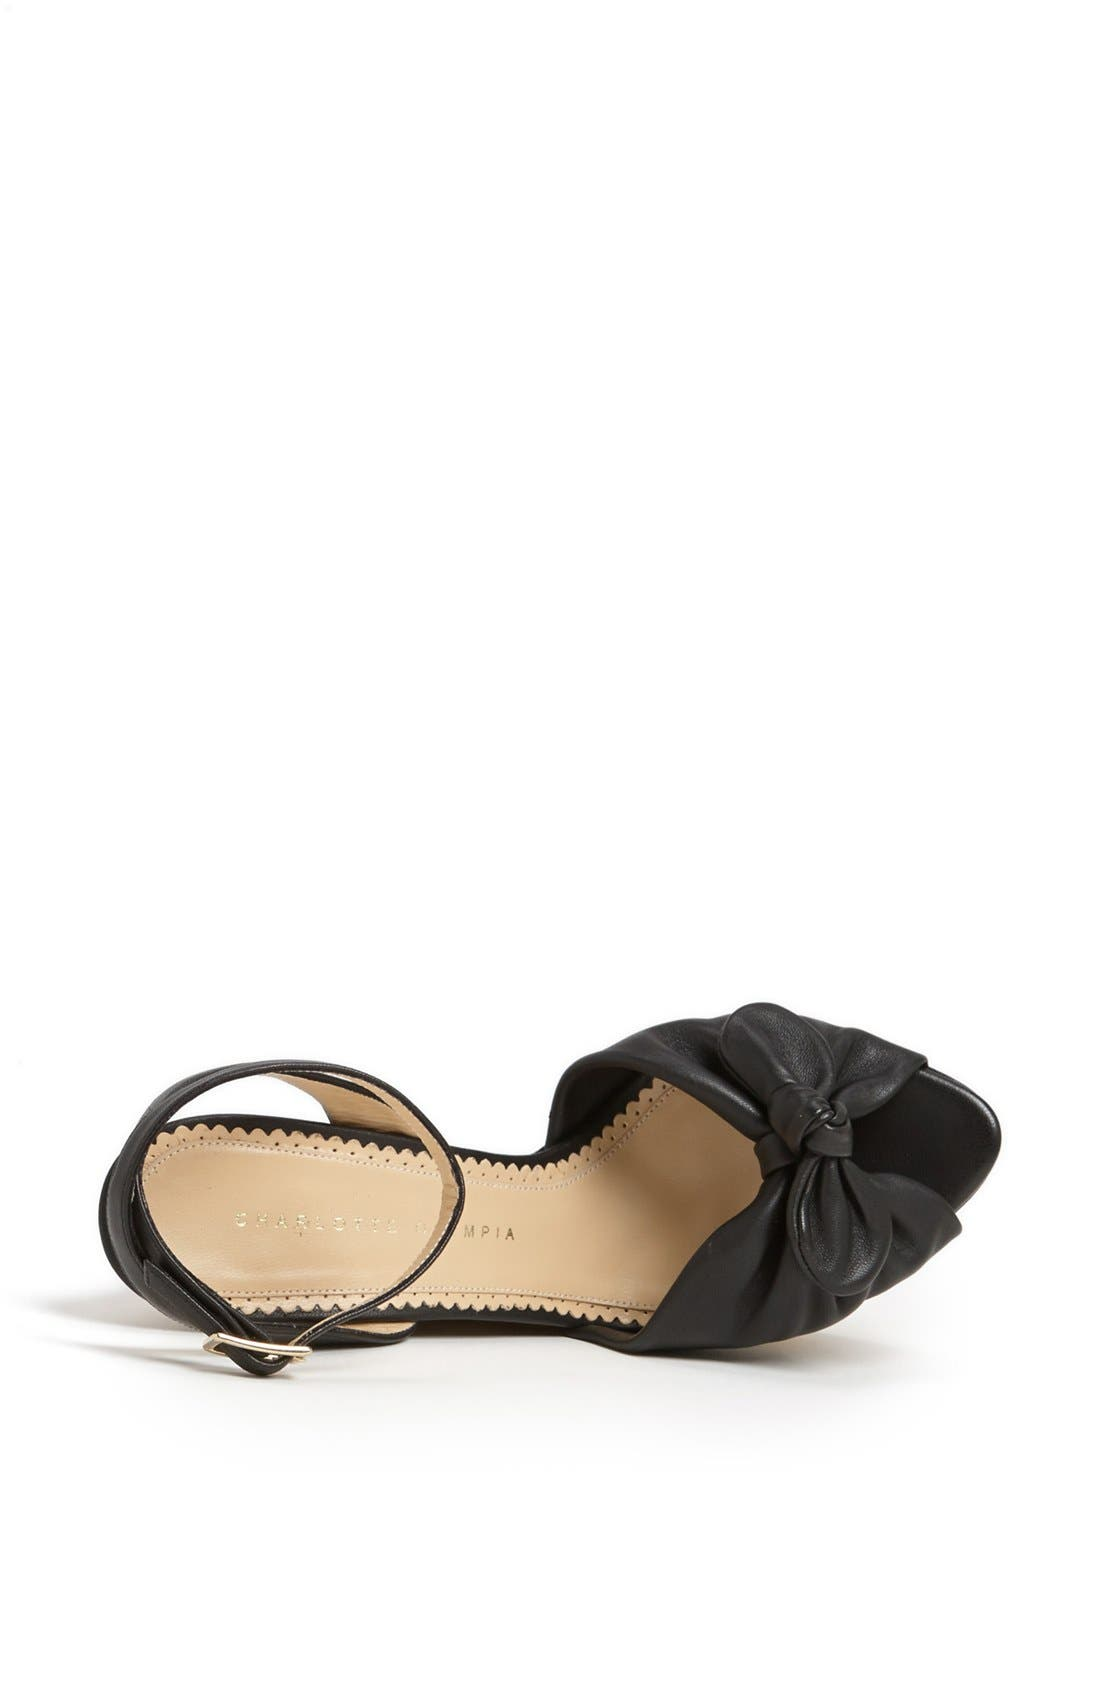 Alternate Image 3  - Charlotte Olympia 'Archie' Wedge Sandal (Nordstrom Exclusive)